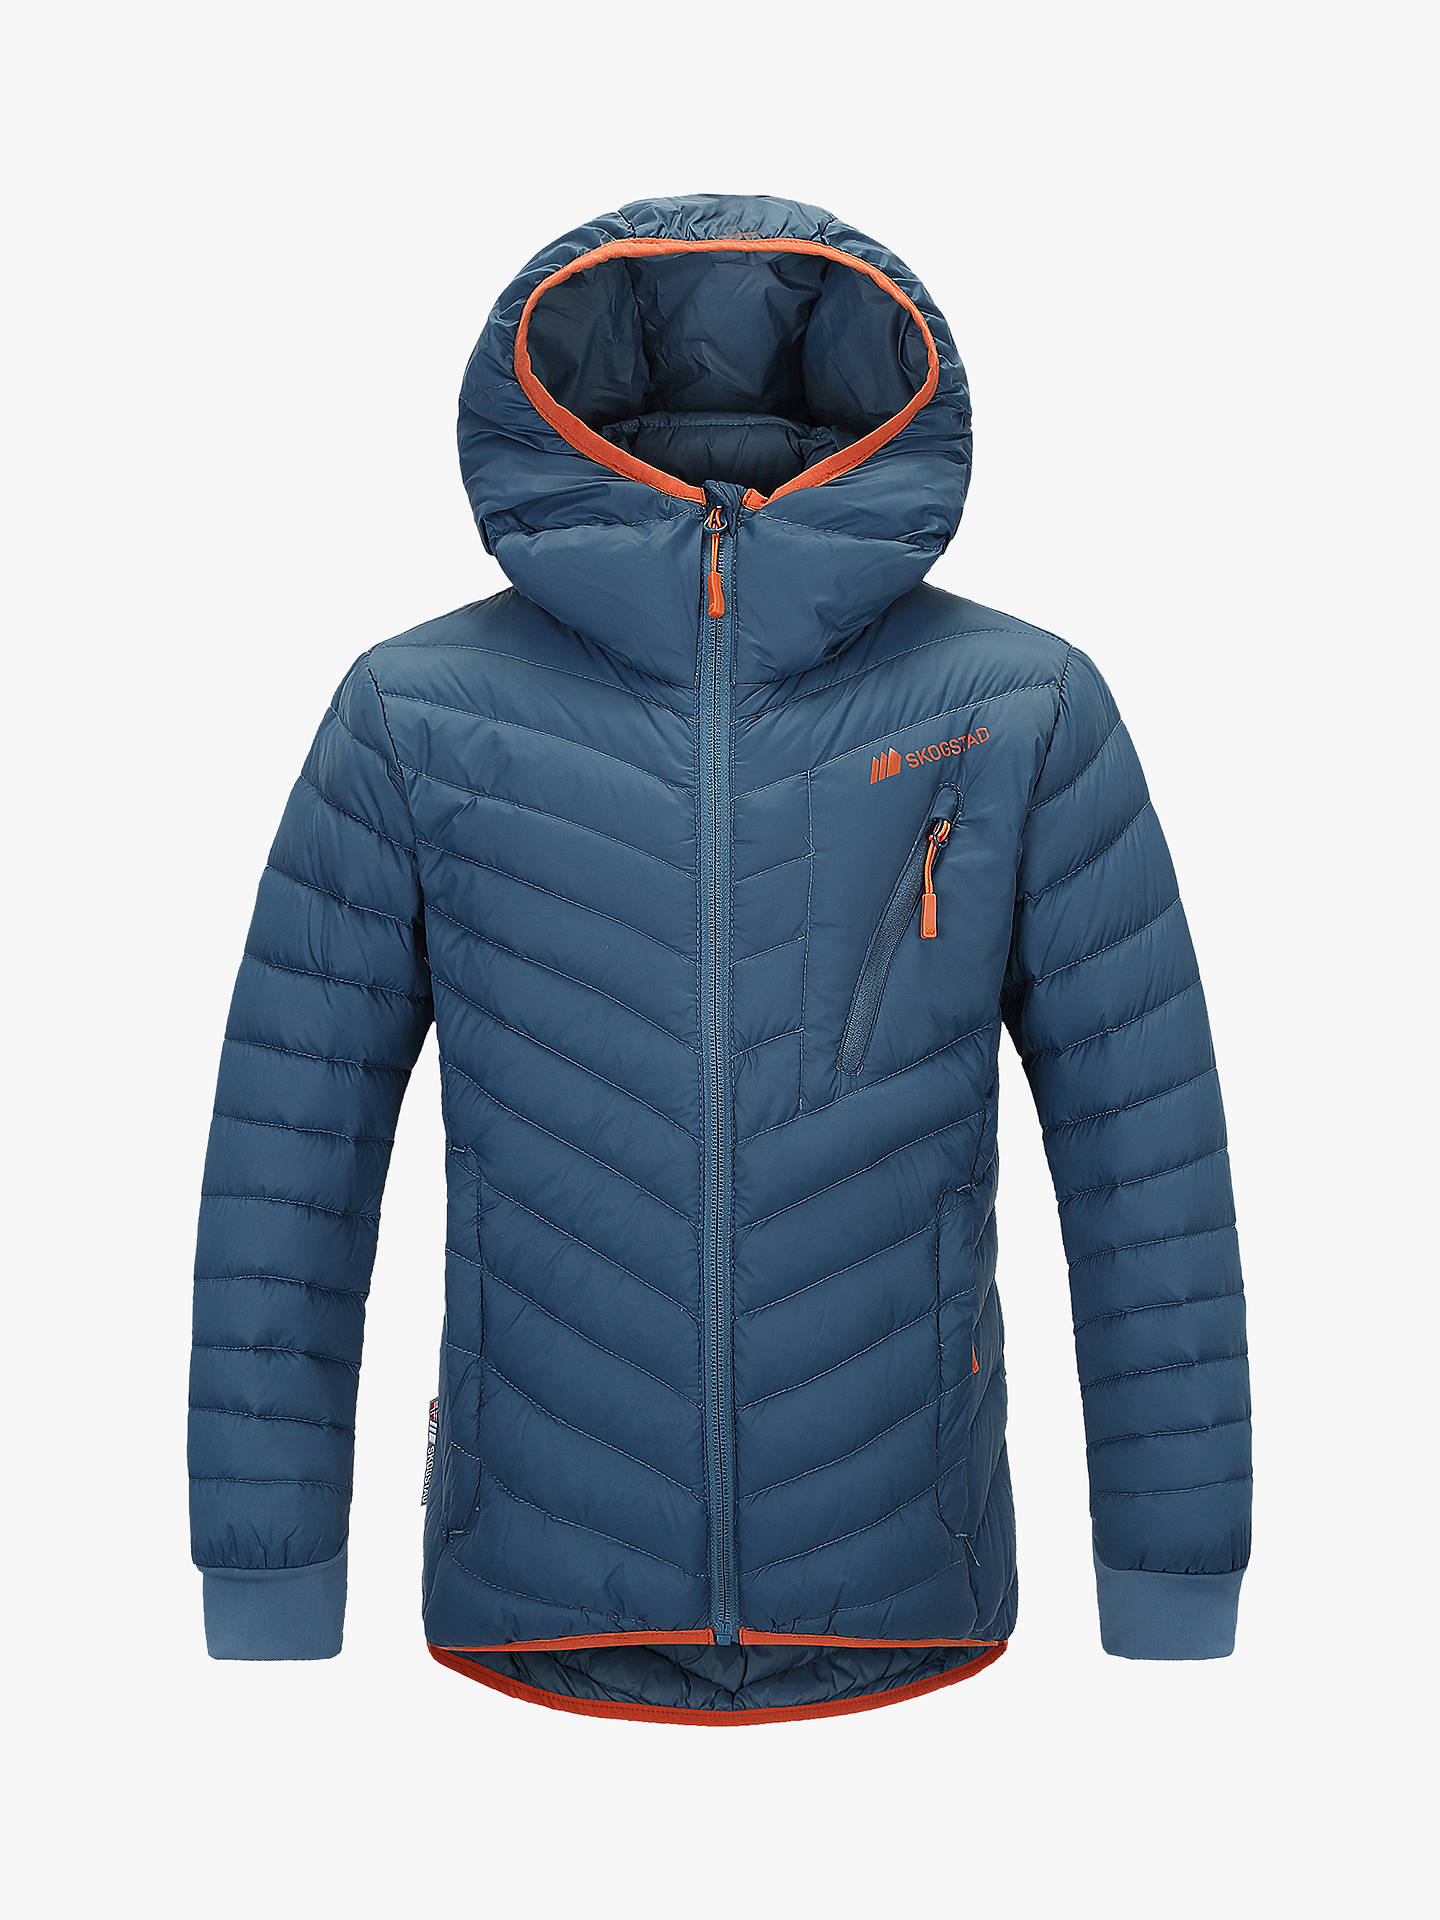 BuySkogstad Boys' Lightweight Down Jacket, Blue Teal, 12 years Online at johnlewis.com